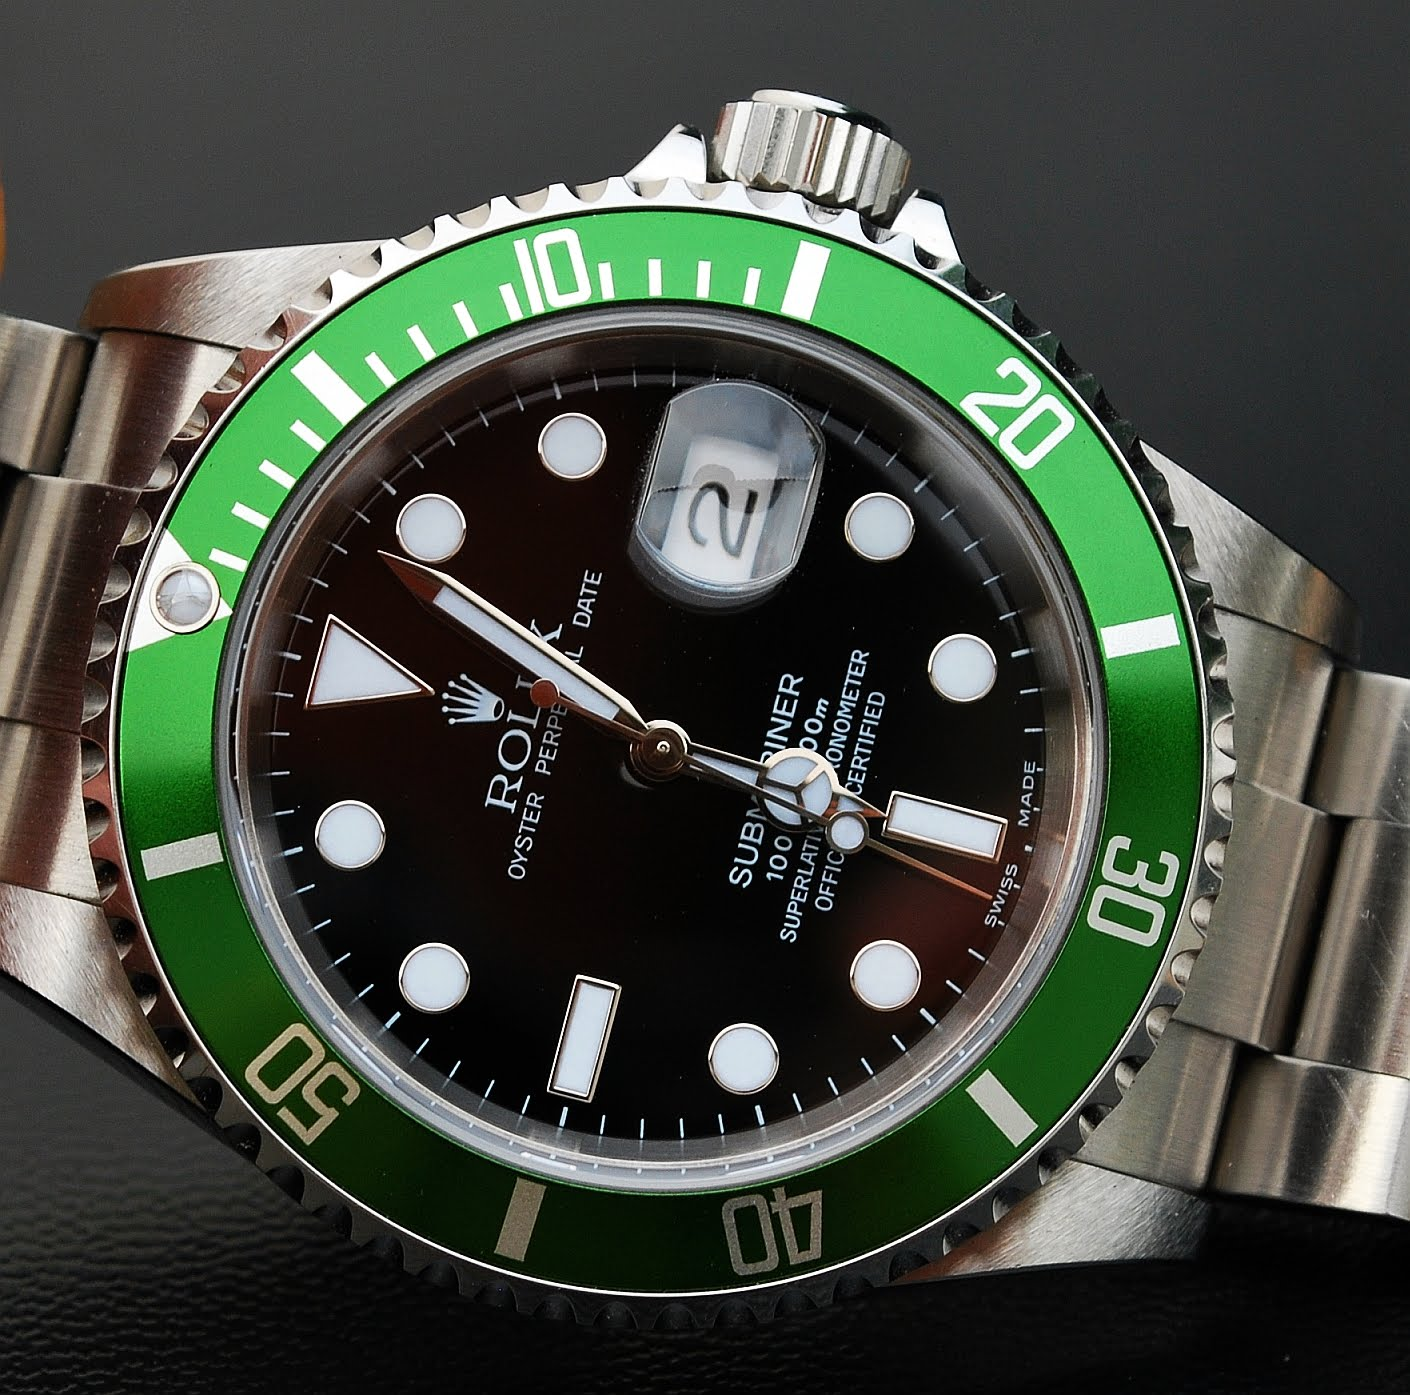 Wristwatch Pictures Rolex Submariner 16610LV FLAT FOUR